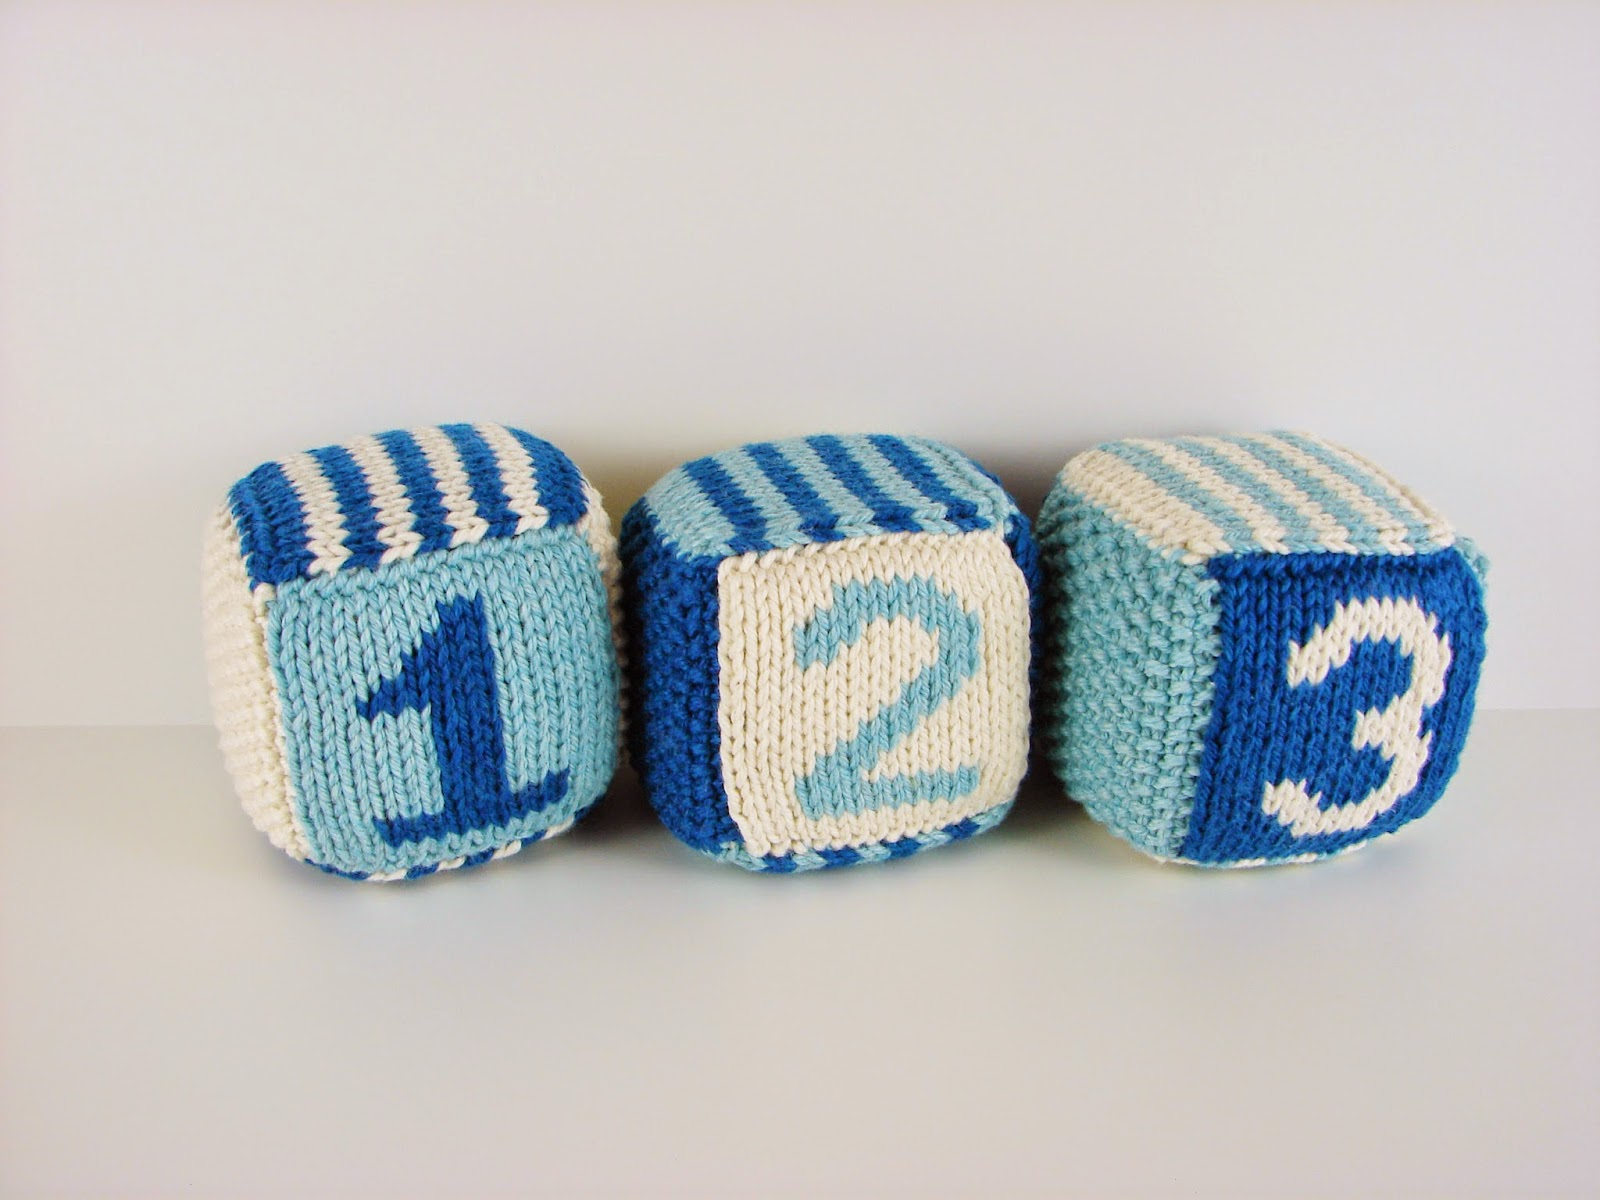 knit, blocks, foam, toys, hand knit, letter, number, striped, white, blue